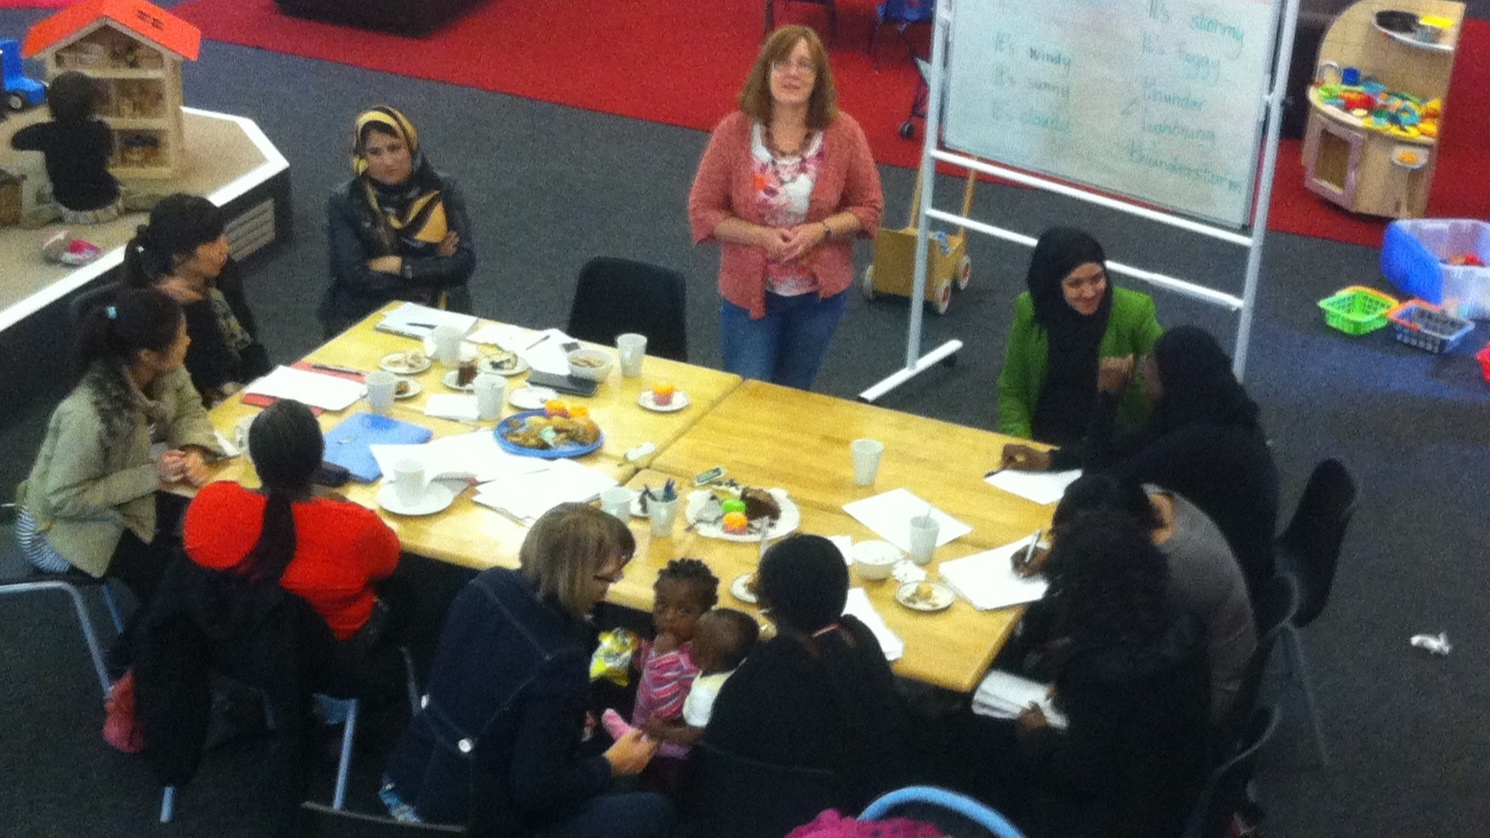 English Fridays - ESOL English Classes 1:30 - 3pm on Fridays during term time